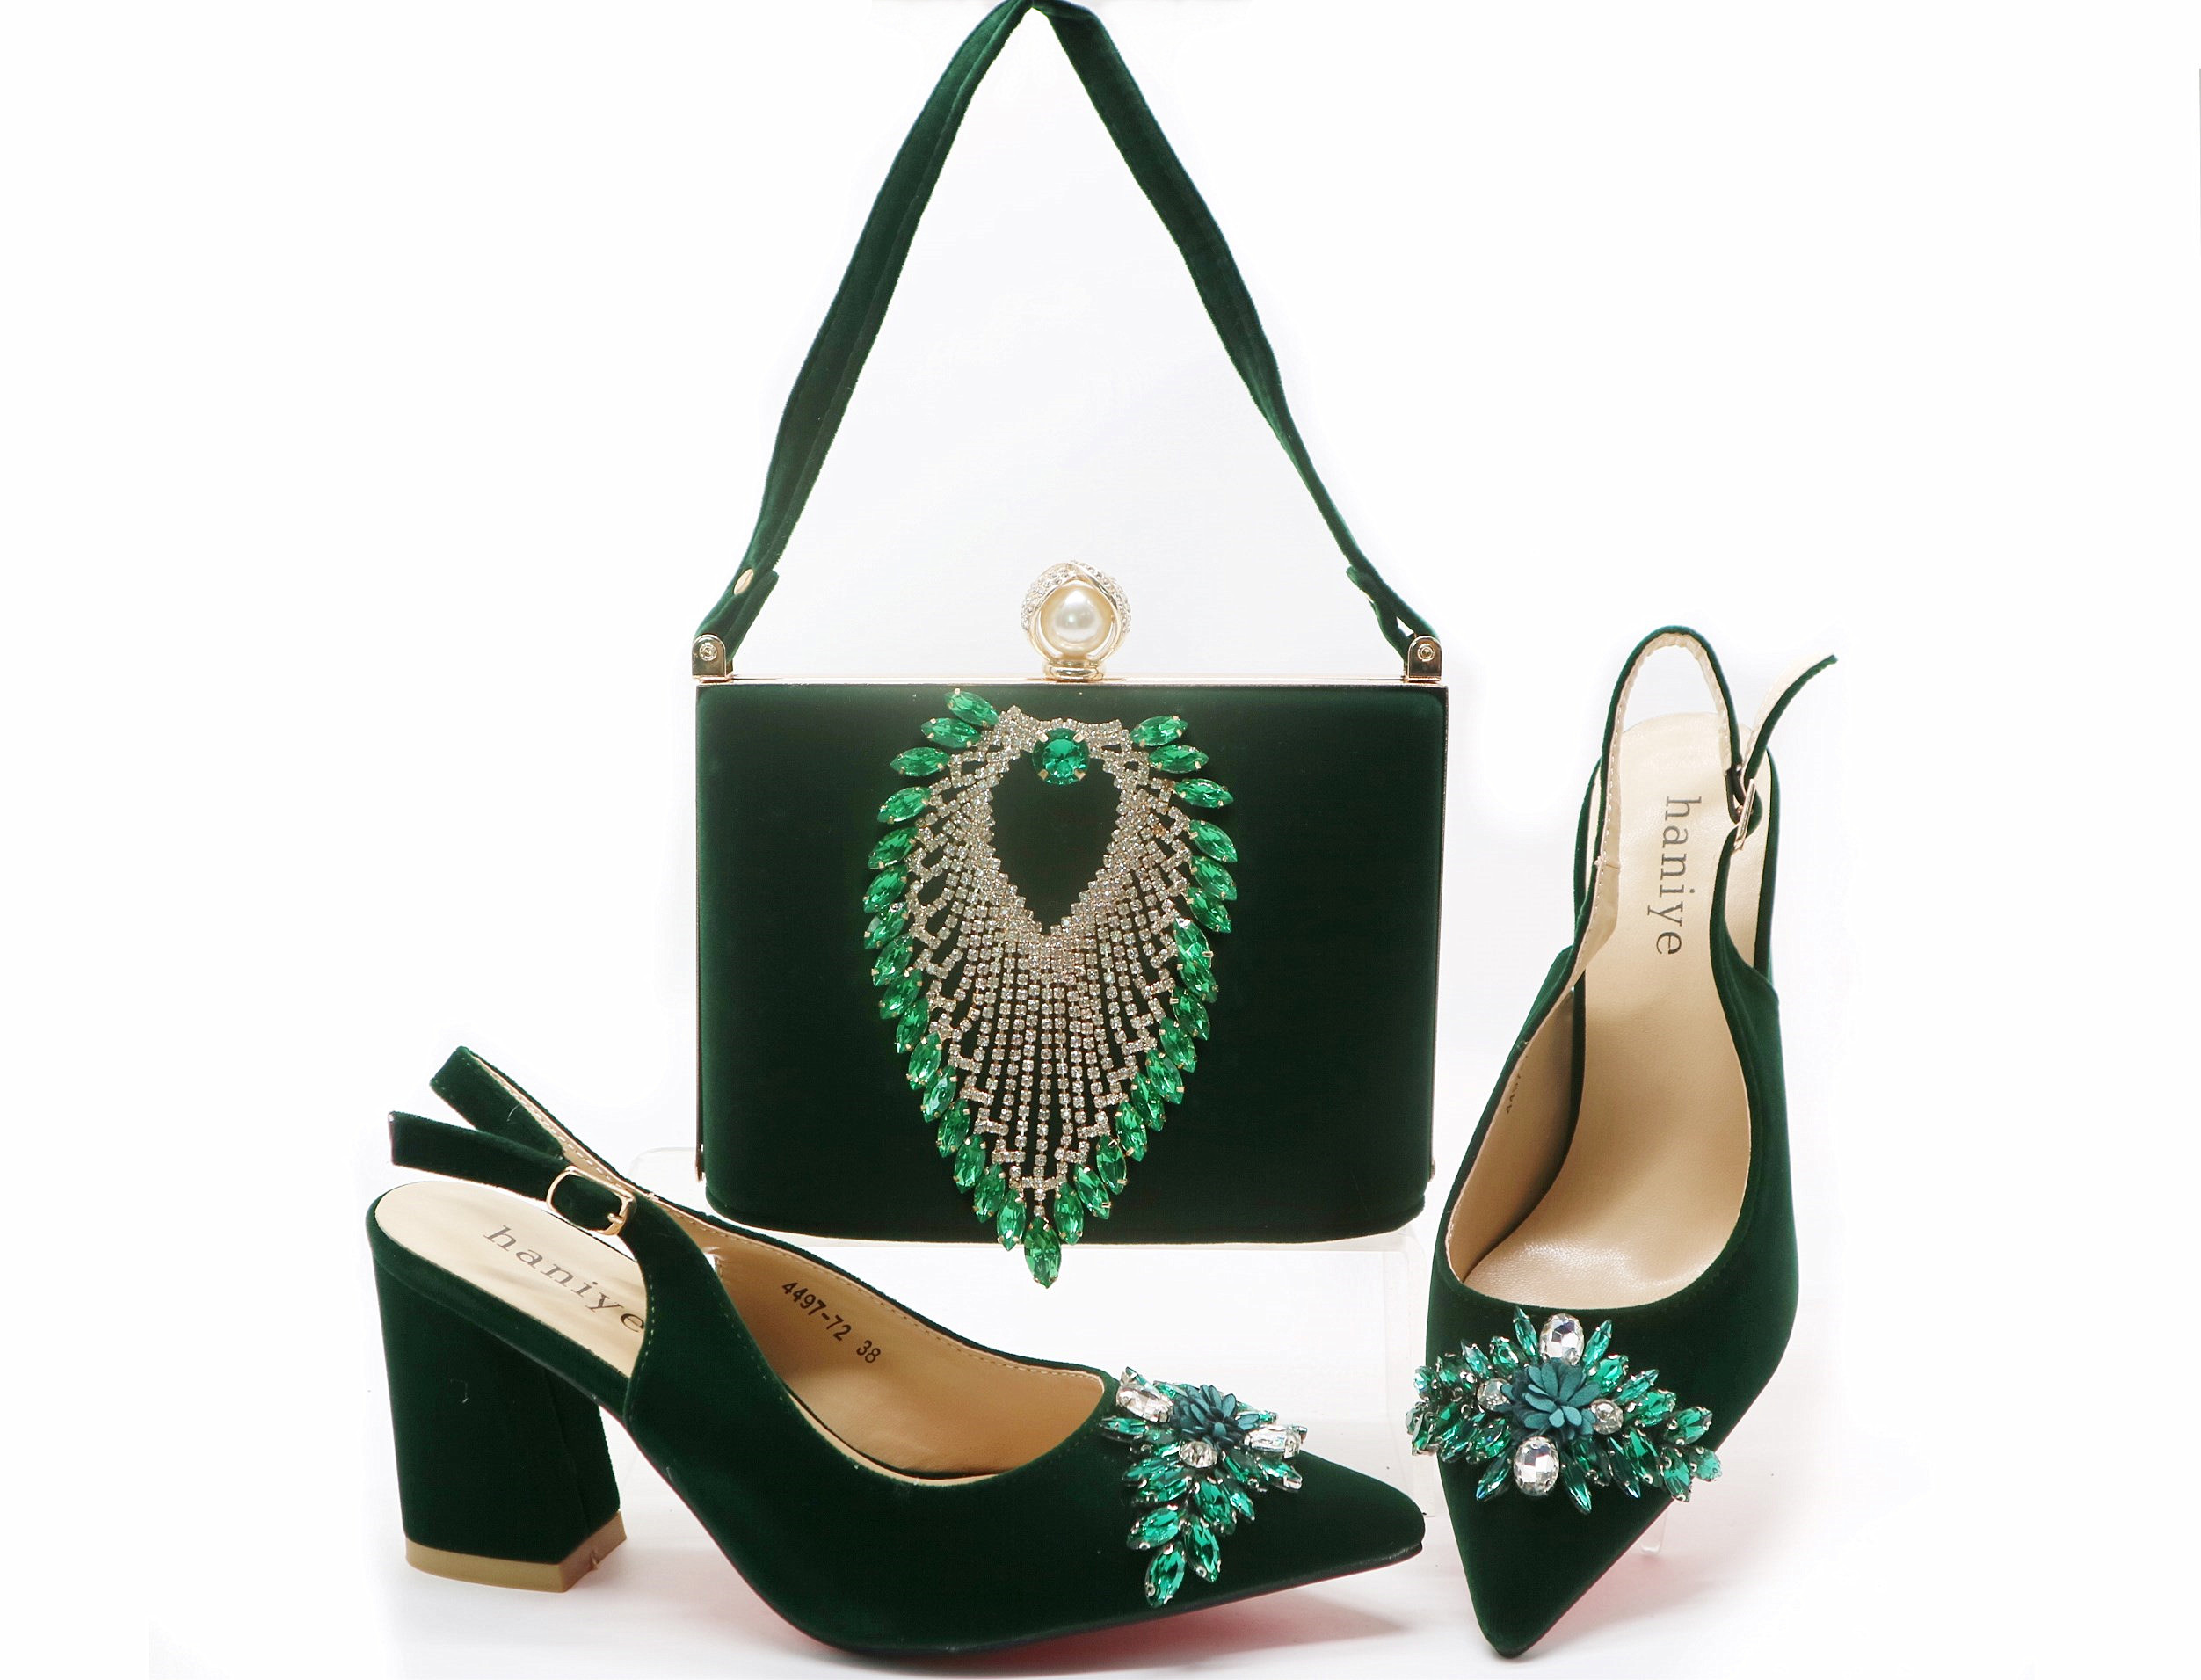 Free shipping SB8404 4 fashion italian shoes and bag teal green velvet sandal shoes and clutches bag set for african aso ebi